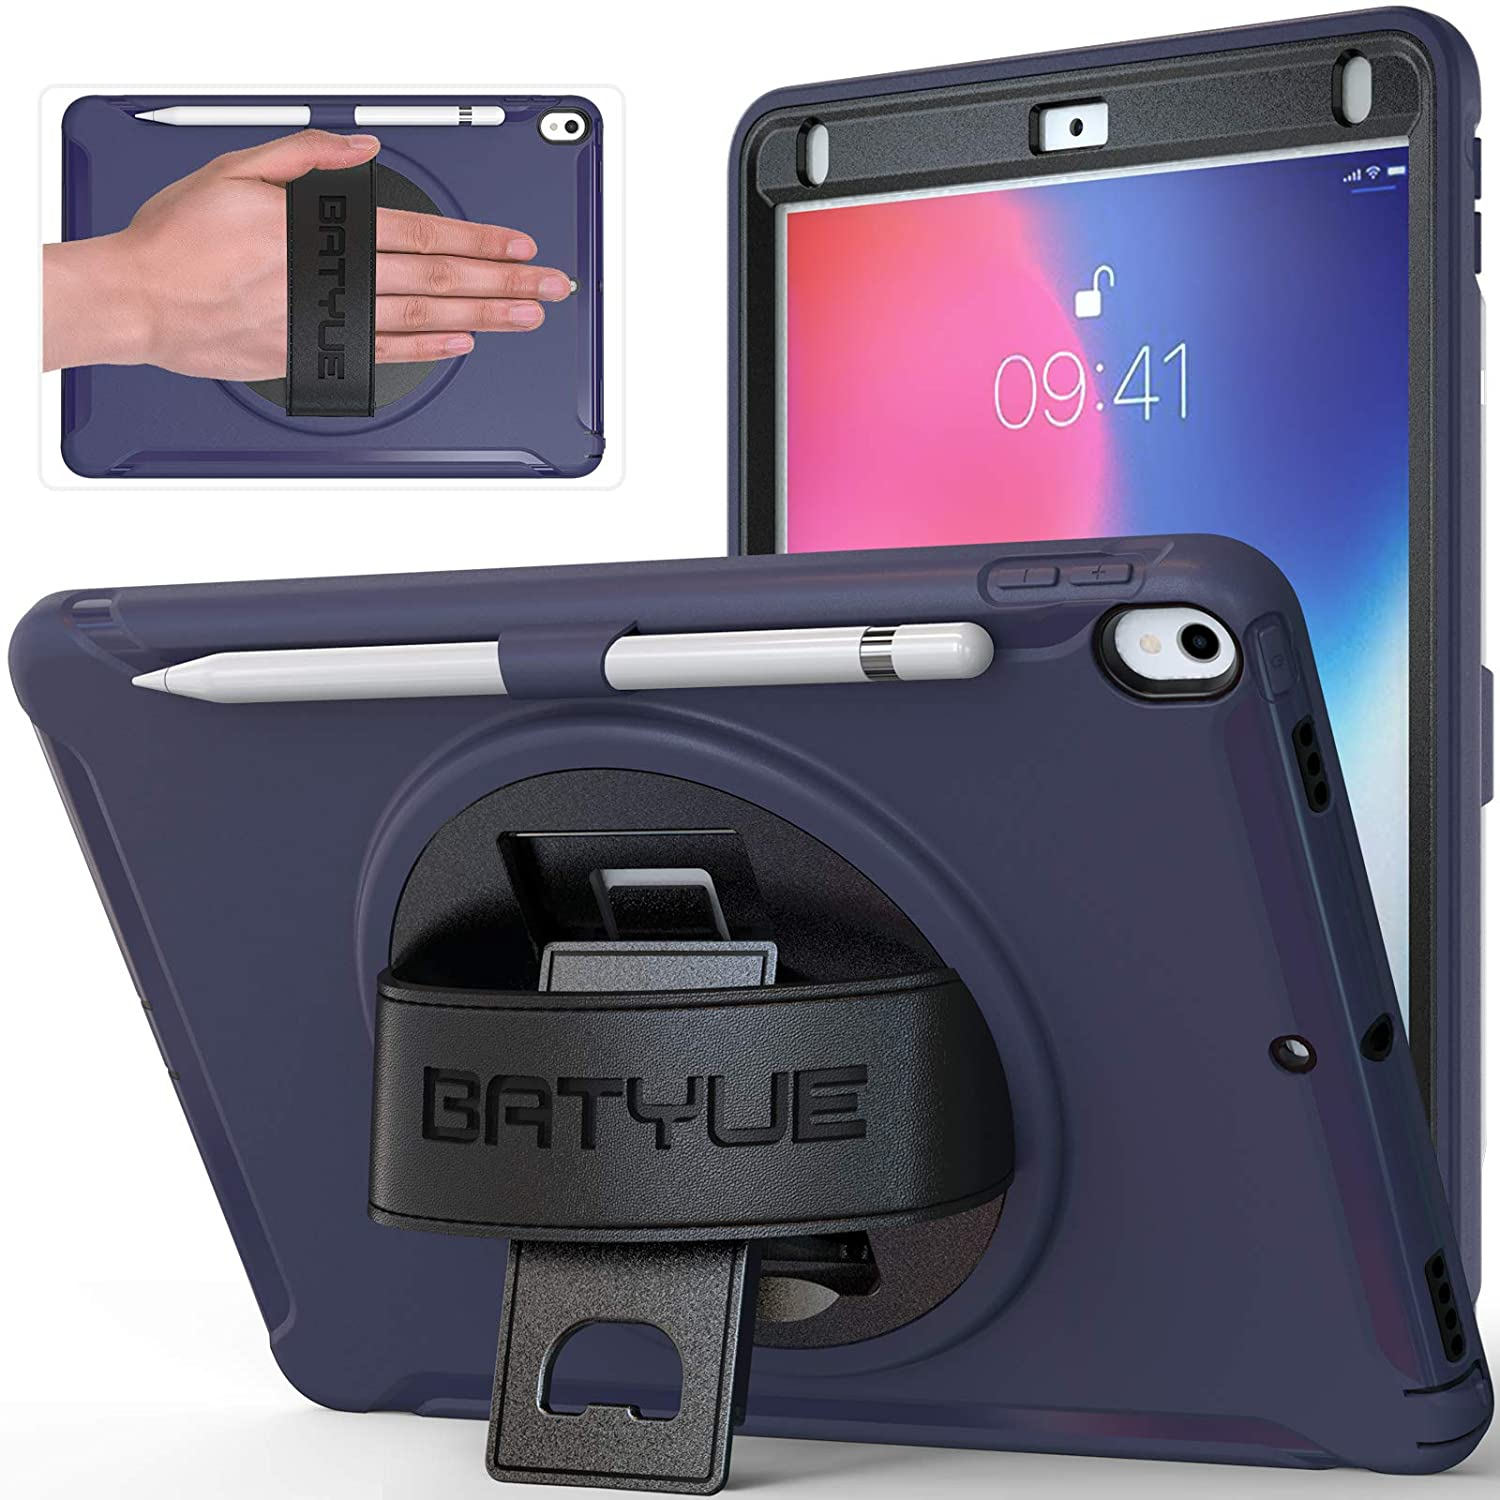 BATYUE iPad 10.5 Case Selling and selling for Air Pro 3 Credence wi